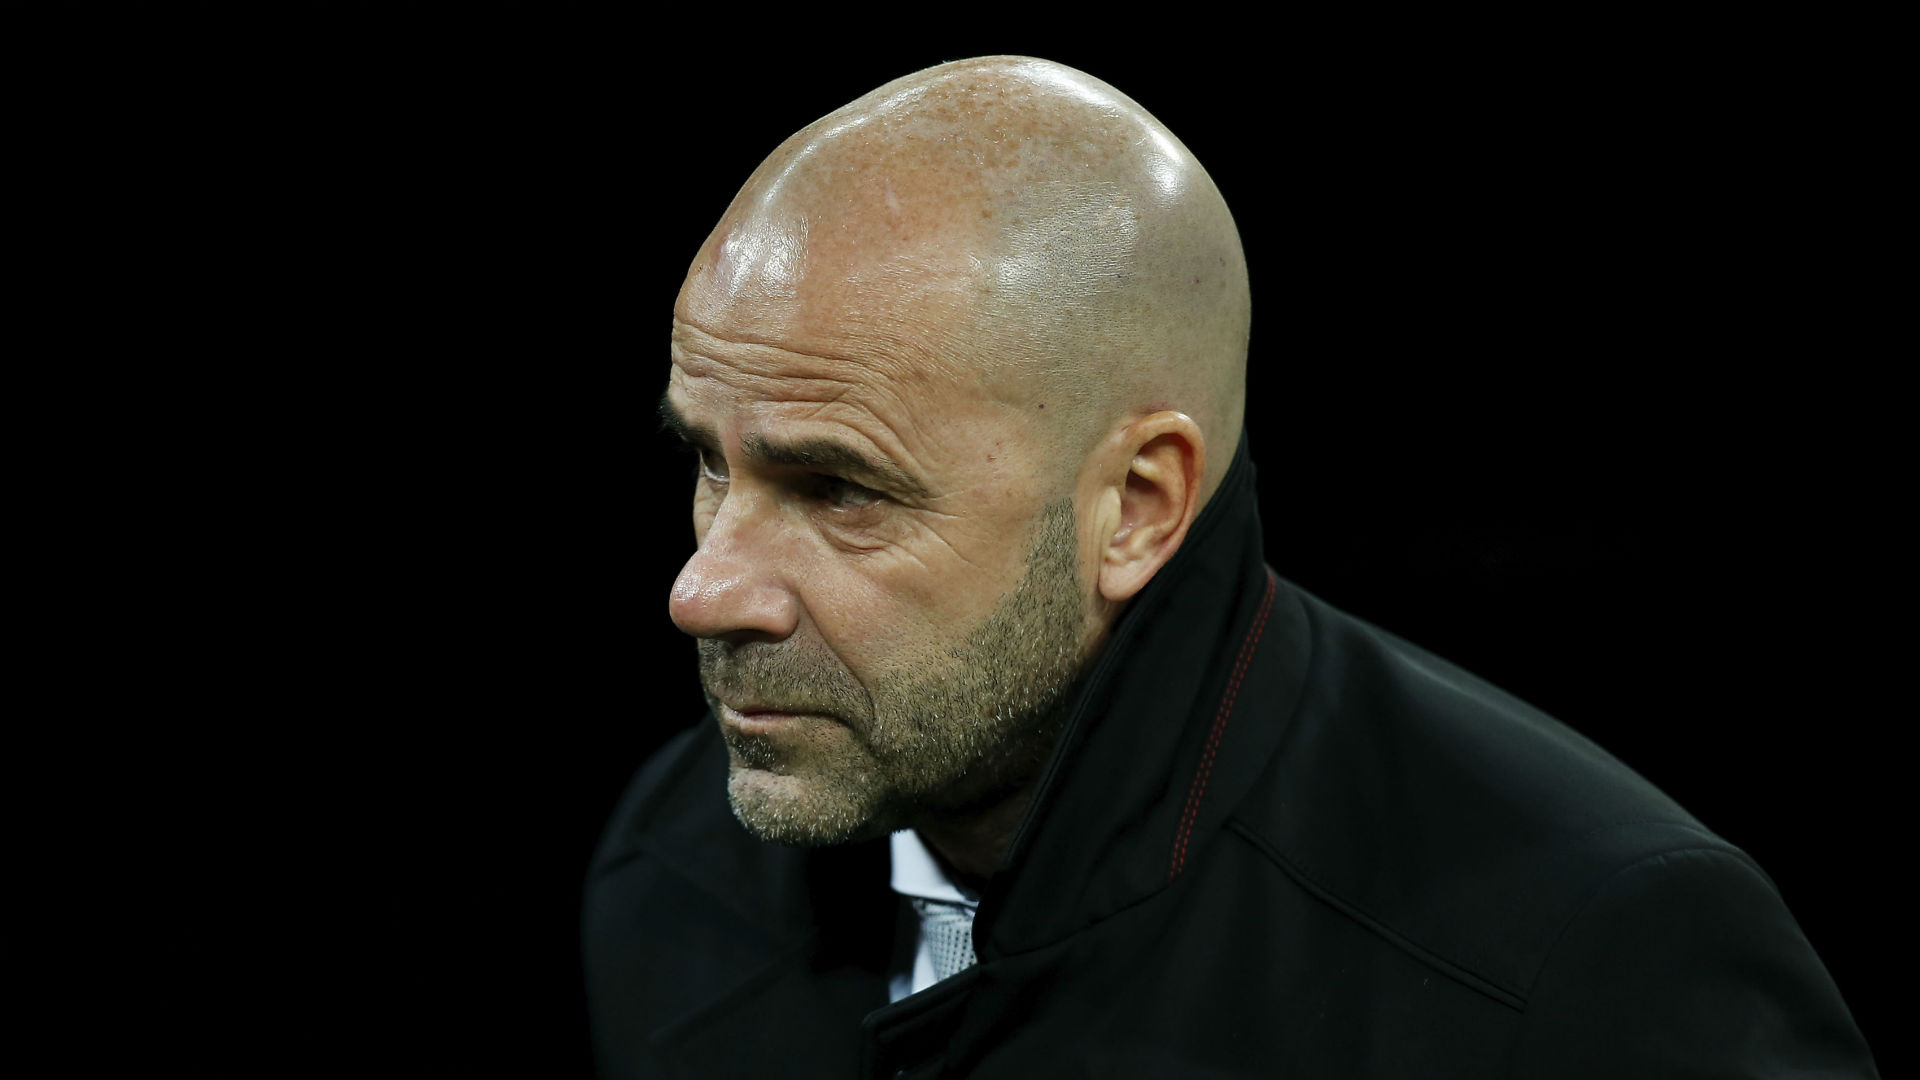 Borussia Dortmund sacks Bosz as coach, appoints Stoeger